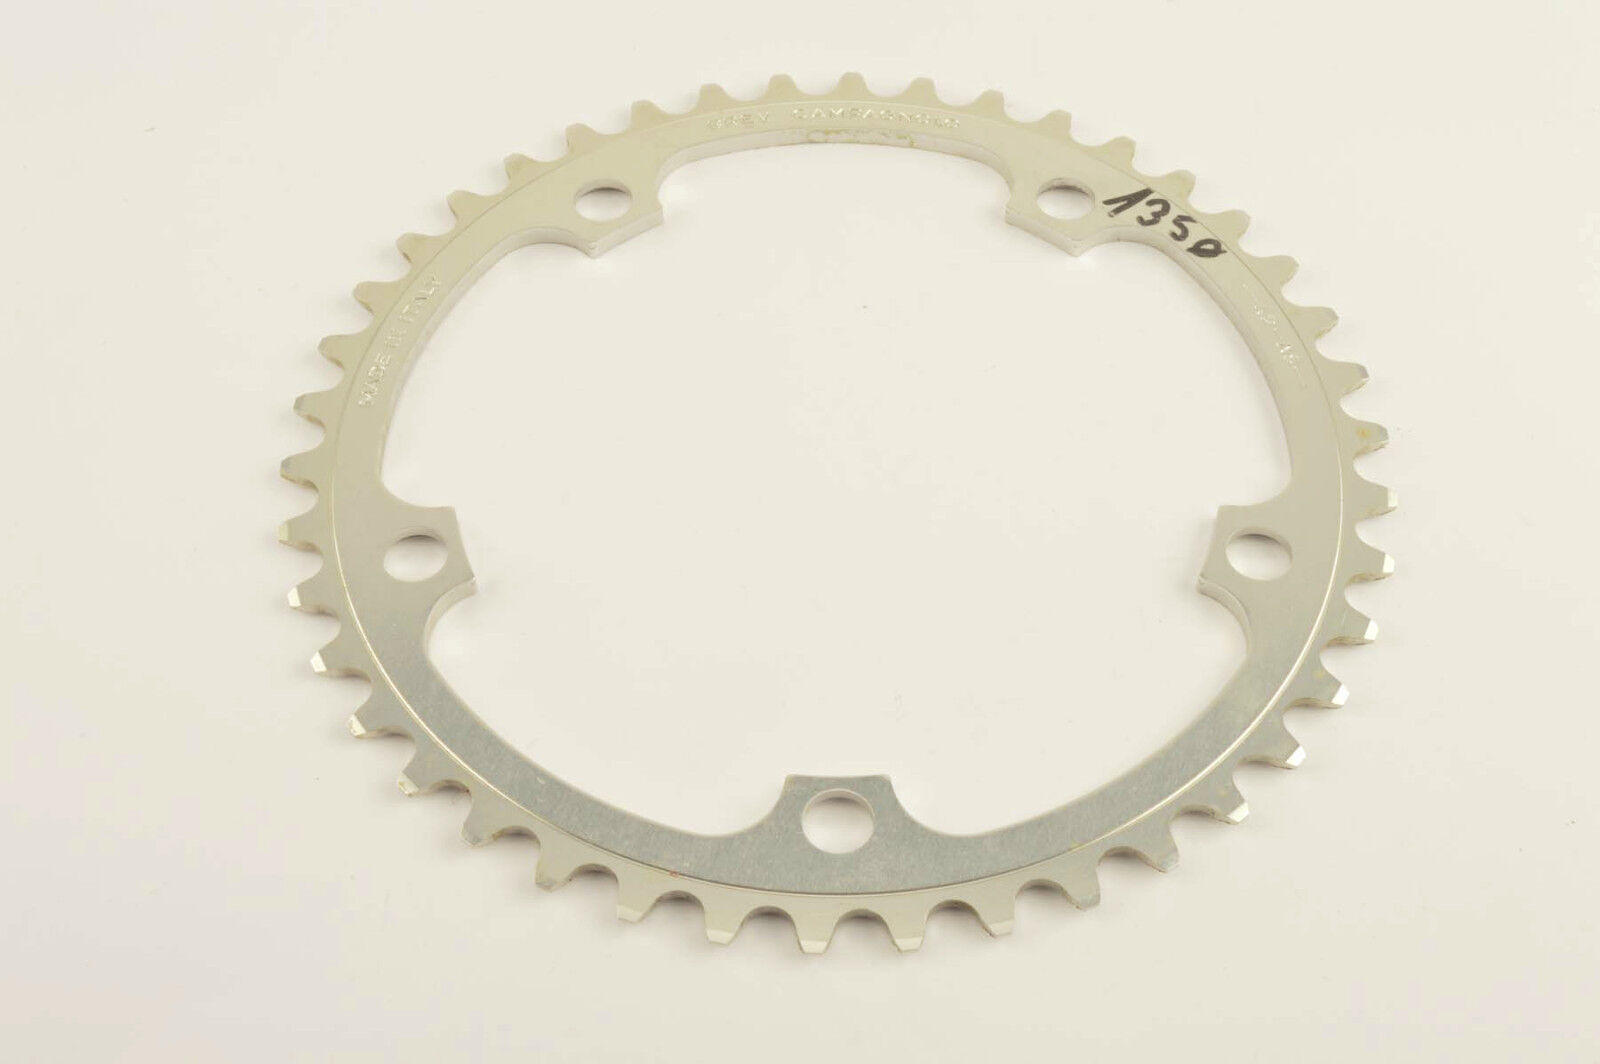 NEW Campagnolo Chainring in 42 teeth teeth teeth and 135 BCD from the 1980s - 90s NOS 7437ec